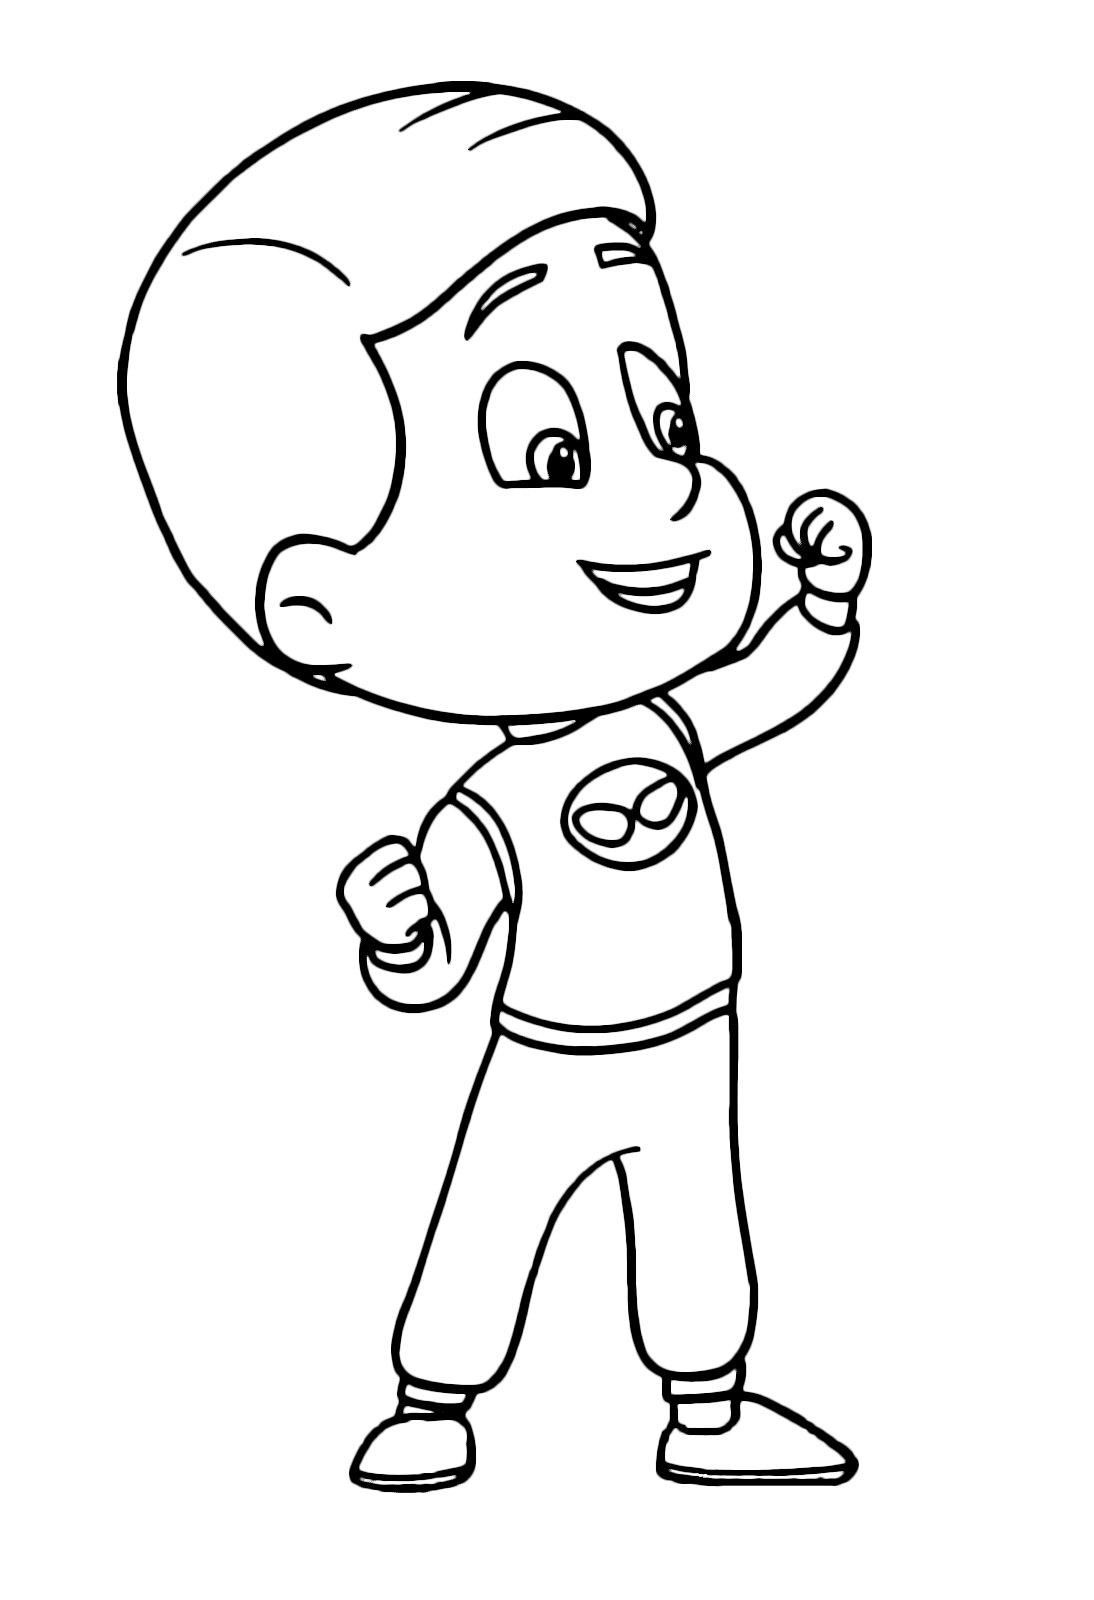 Pj masks coloring pages best coloring pages for kids for Immagini super pigiamini da stampare